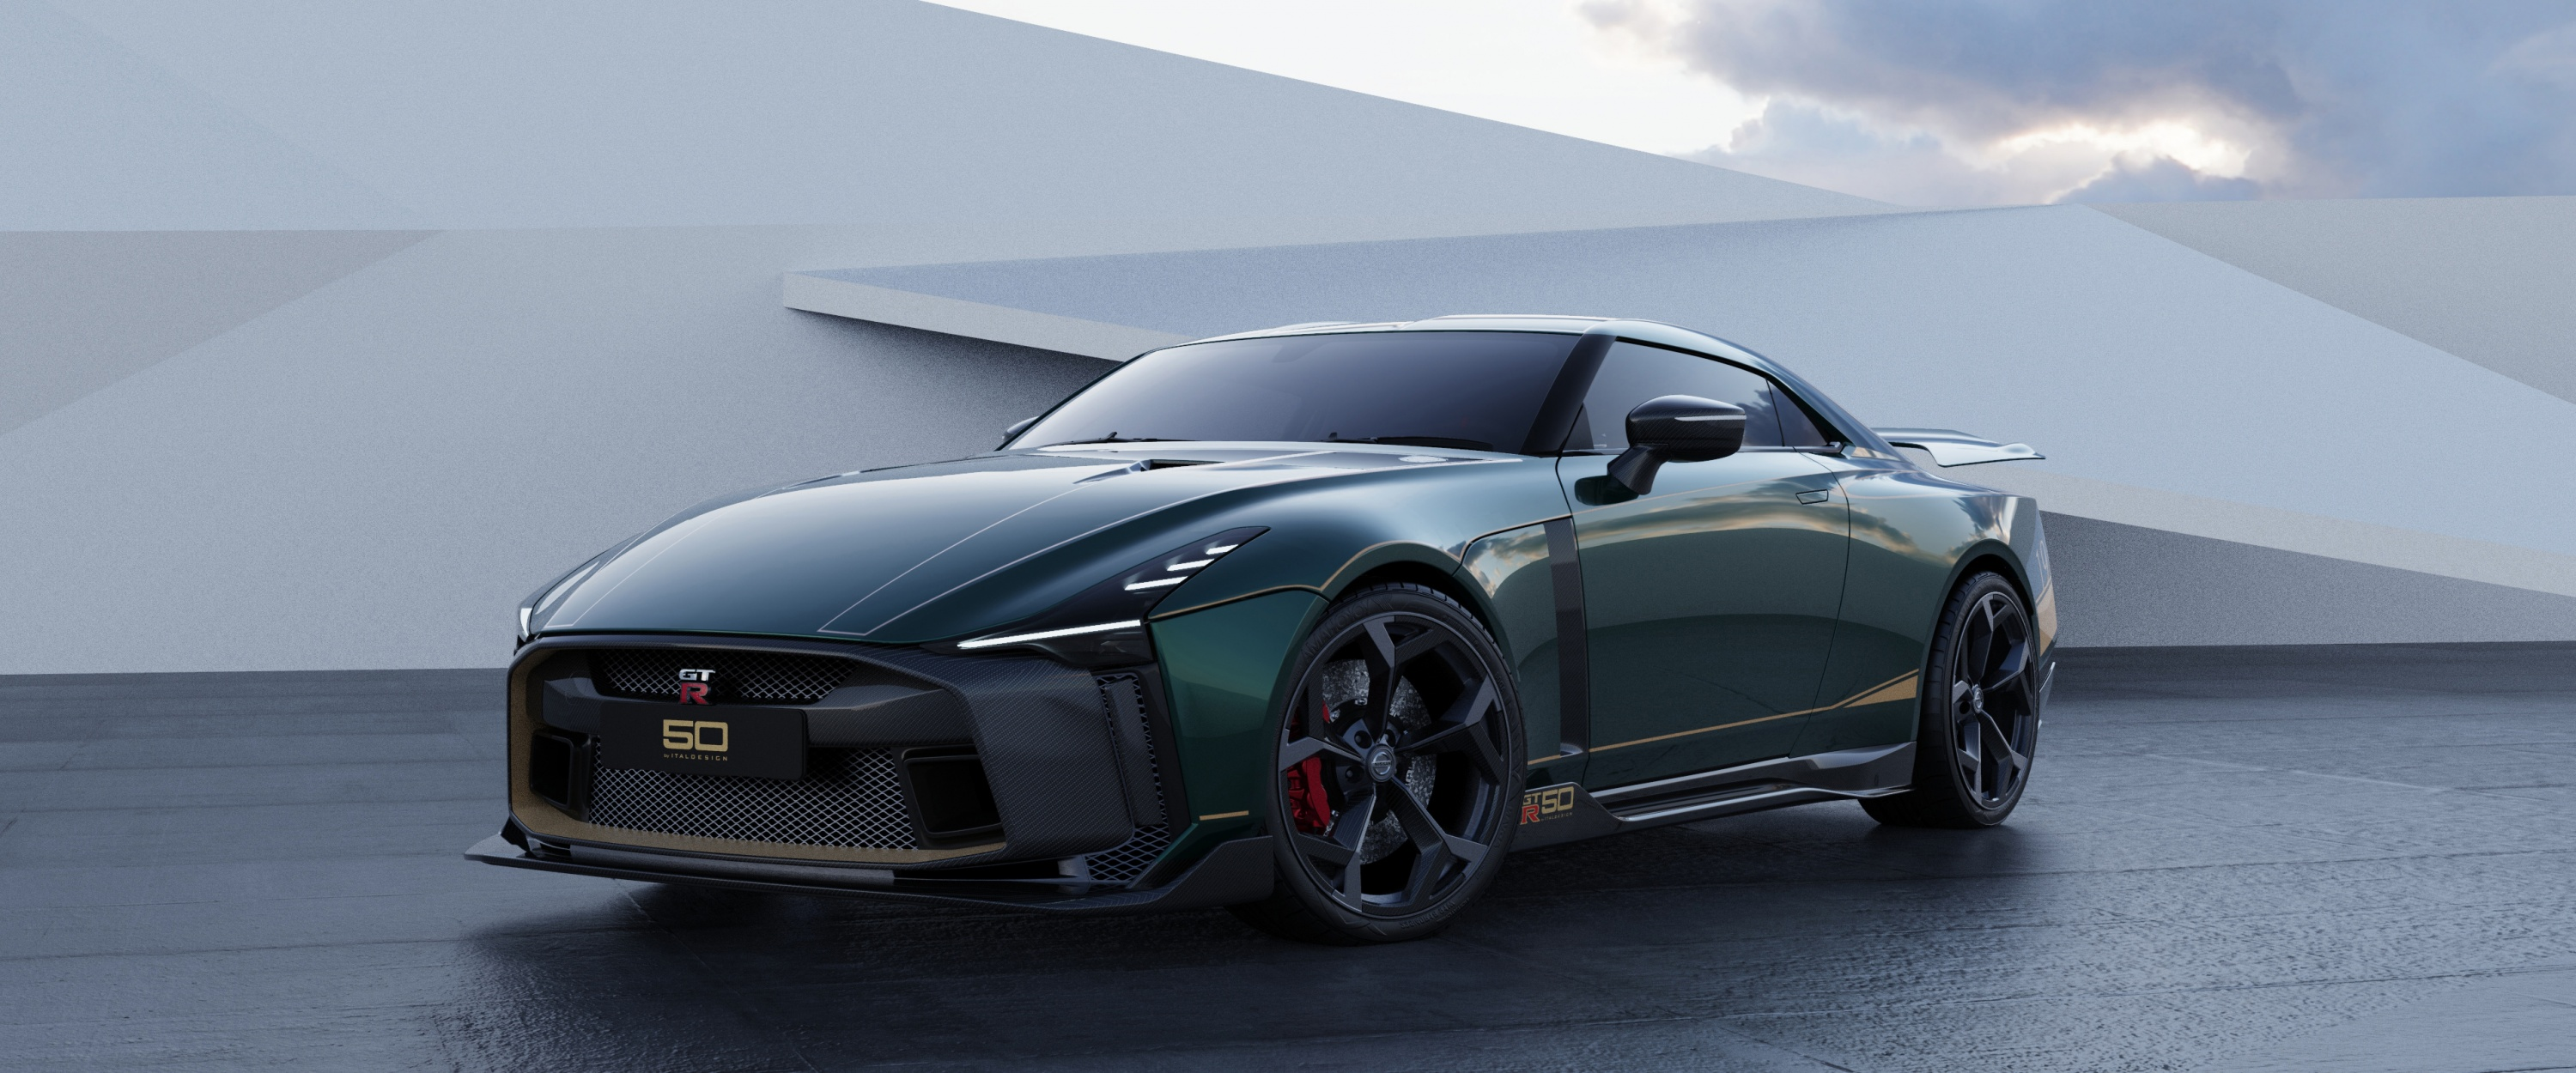 Nissan GT-R50 by Italdesign production rendering Green FR34-source.jpg